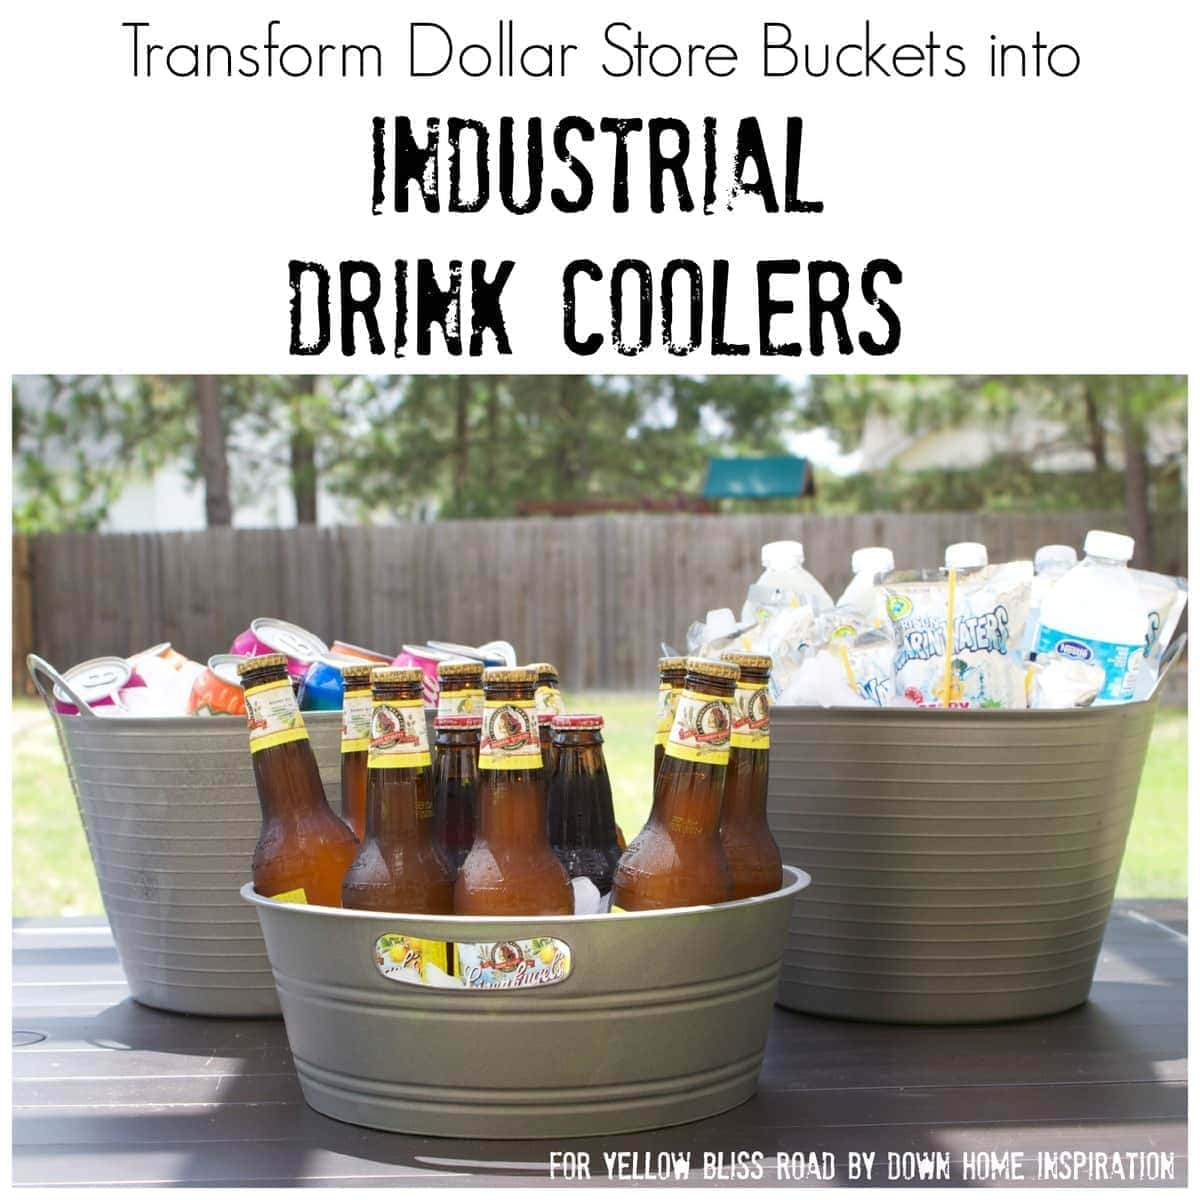 How to Transform Dollar Store Buckets into Industrial Drink Coolers